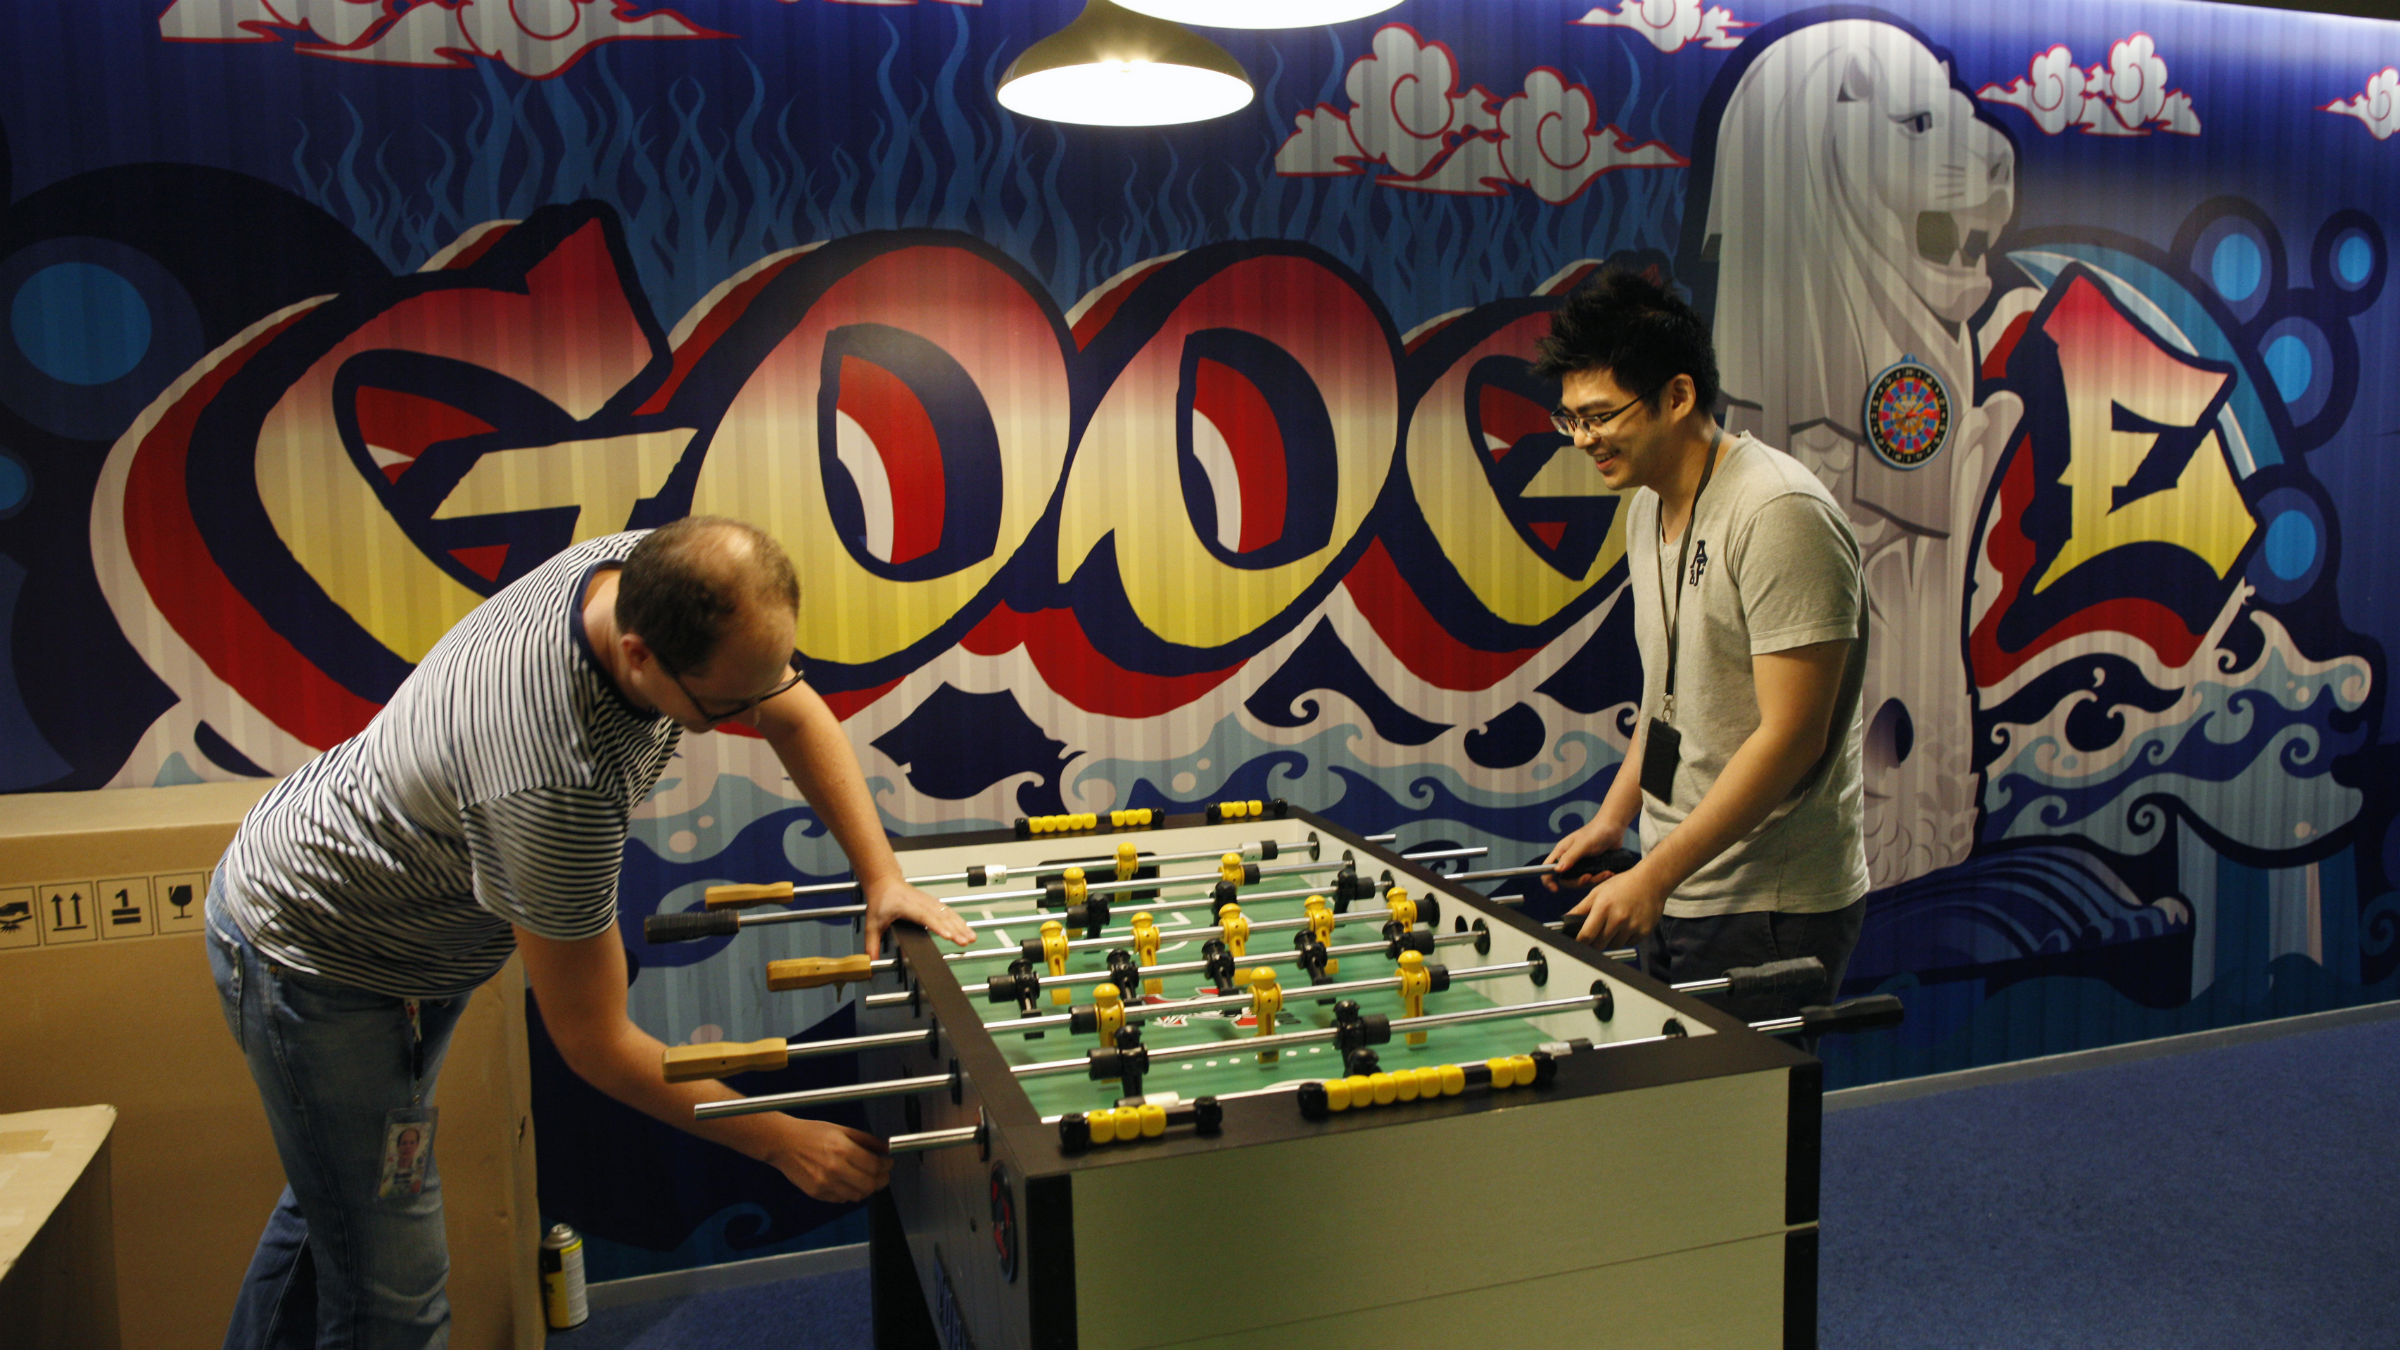 "Google's communications manager Robin Moroney (L) plays table soccer with a Google employee at a recreational area of their Singapore office July 8, 2013. Singapore's move to tighten regulation of news web sites, already under fire from bloggers and human rights groups, has attracted criticism from an unexpected quarter - large internet firms with a big presence in the city-state who say the new rules will hurt the industry. Web giants Facebook Inc, eBay Inc, Google Inc and Yahoo! Inc have said the revised rules ""have negatively impacted Singapore's global image as an open and business-friendly country""."